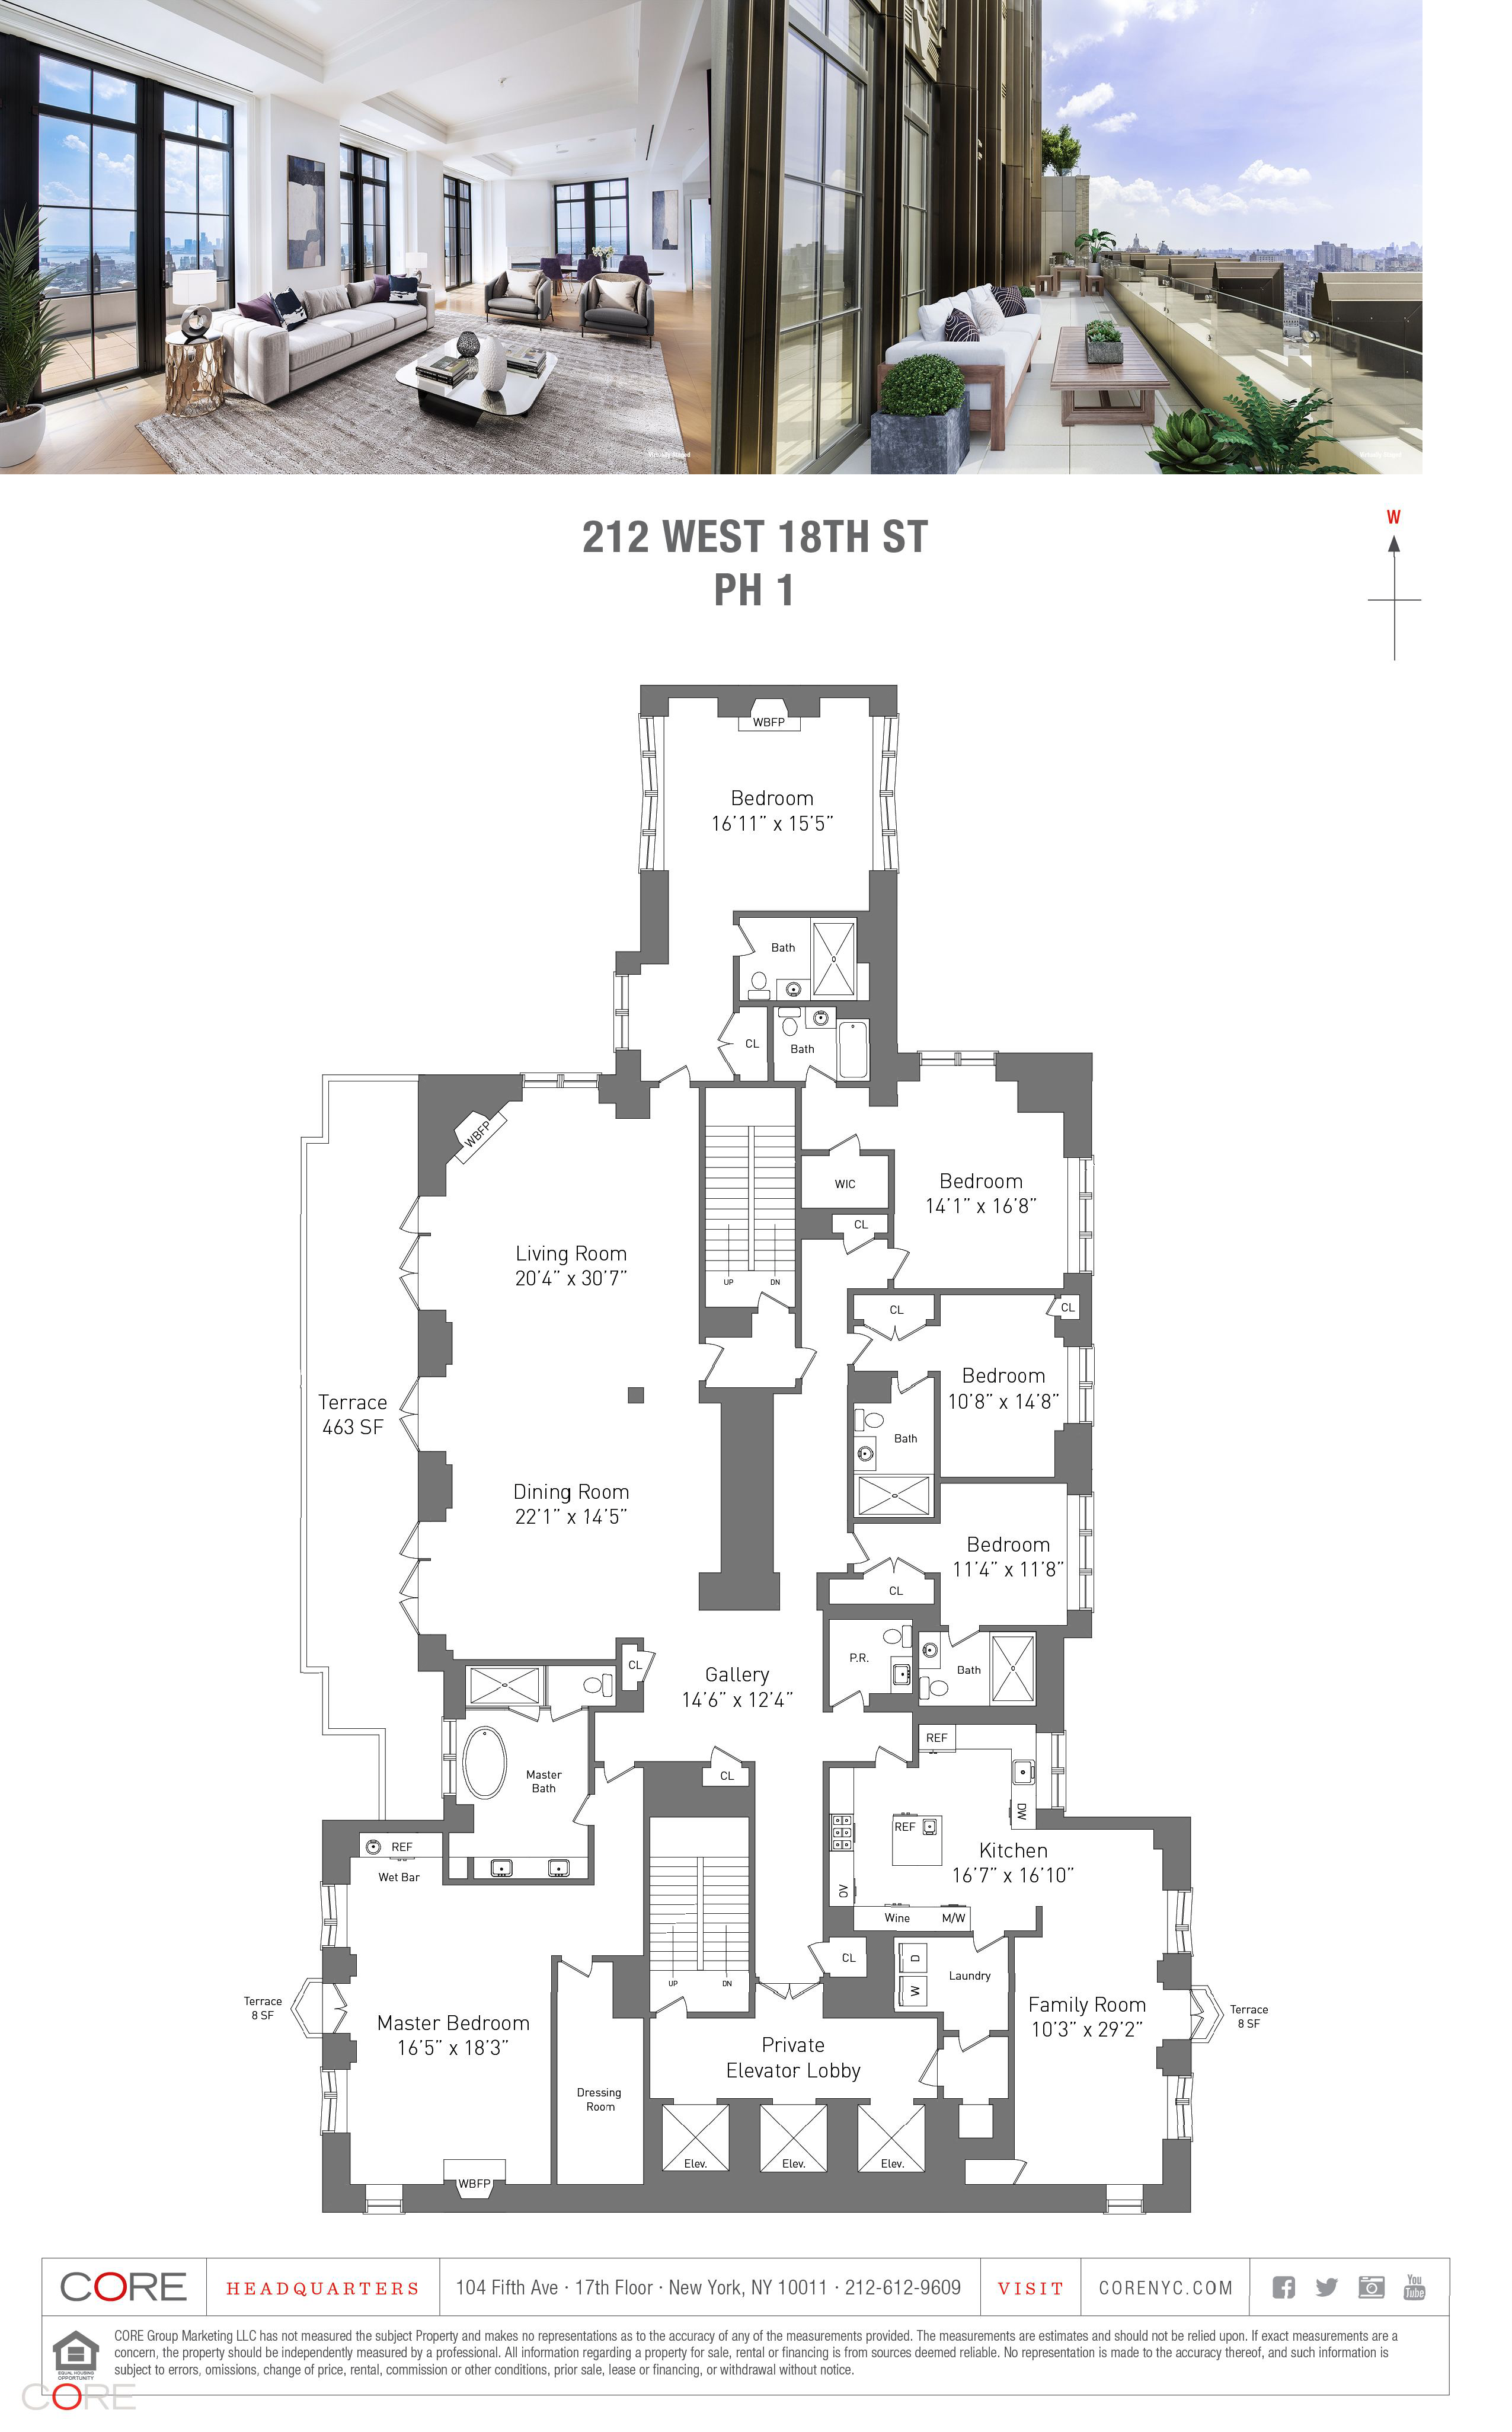 Re 212 West 18th St Penthouse1 New York Ny 10011 Core Real Estate Luxury Floor Plans Penthouse Apartment Floor Plan Craftsman House Plans